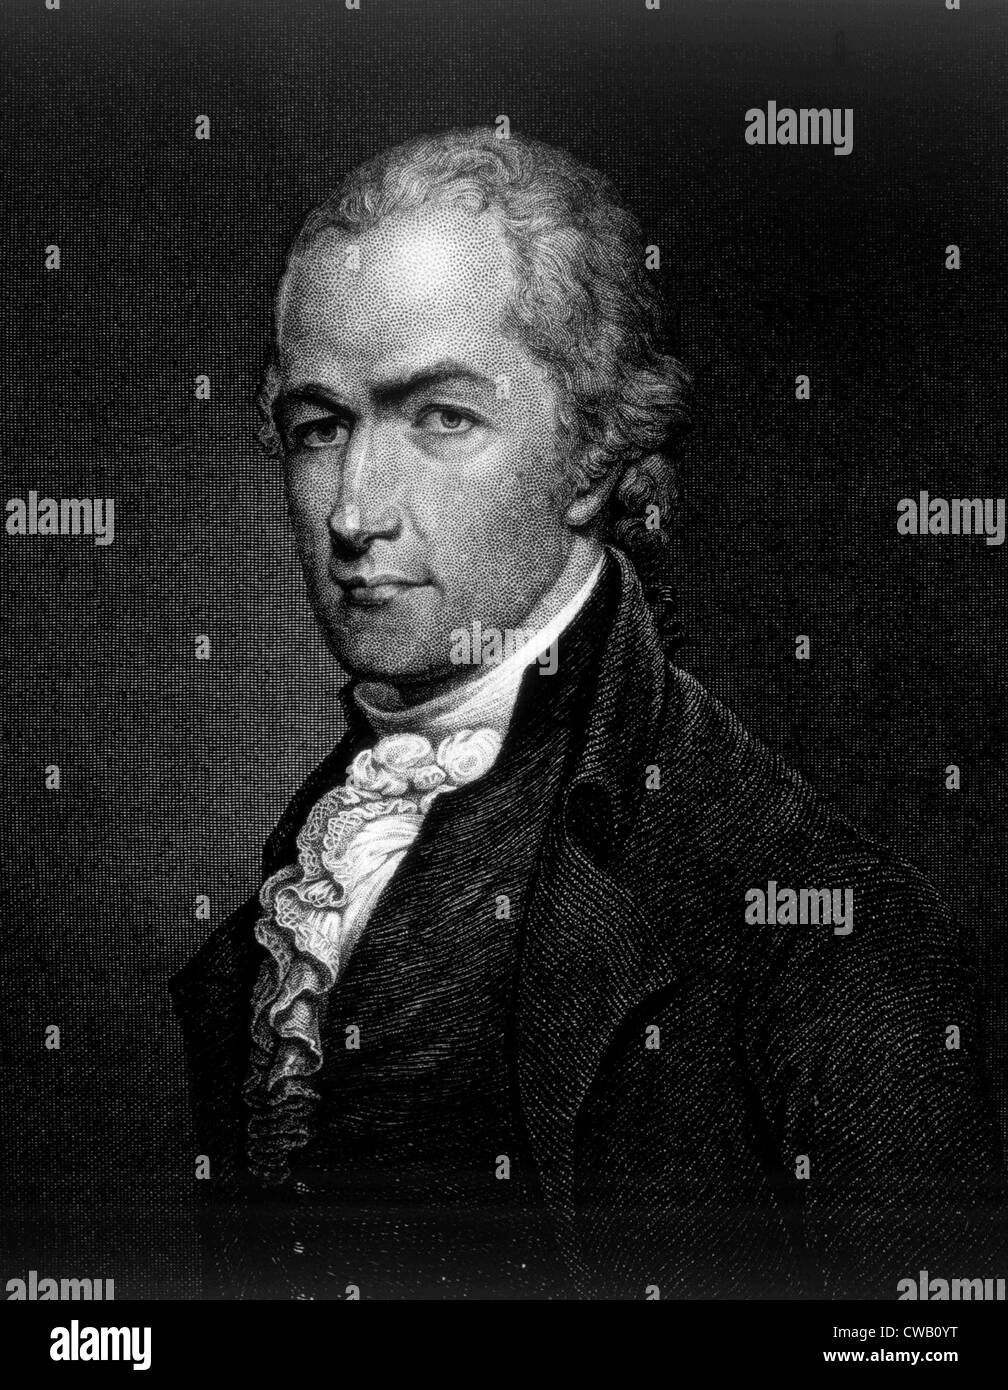 Alexander Hamilton (1755-1804), gravure 1859 Photo Stock